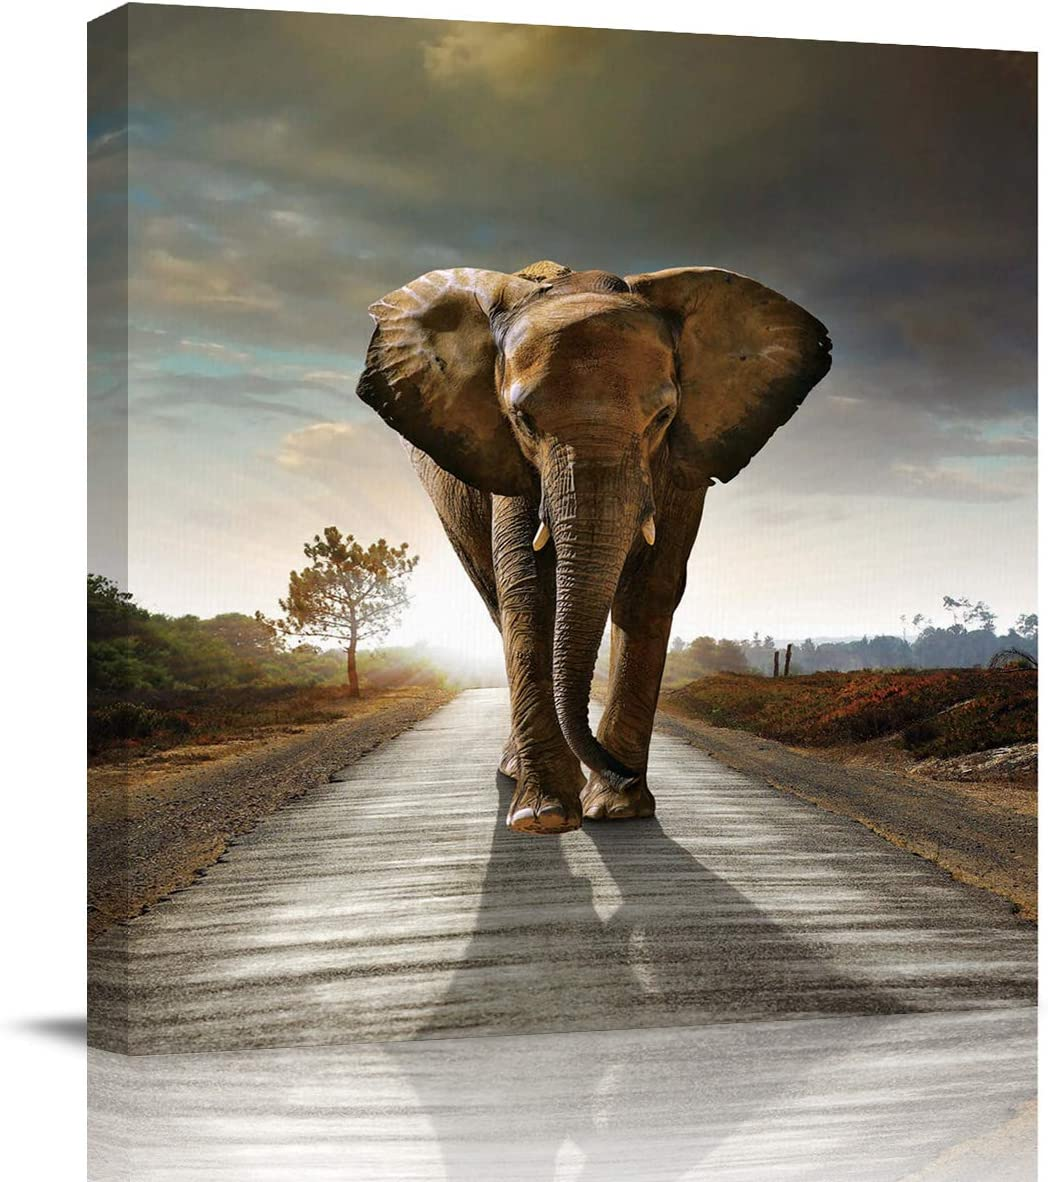 The Landscape of Elephant Art Prints Square Wall Art on Canvas,Modern Painting Pictures Artworks for Living Room Bedroom Office Hotel Home Decor,Stretched by Wooden Frame,Ready to Hang,12x12 Inch